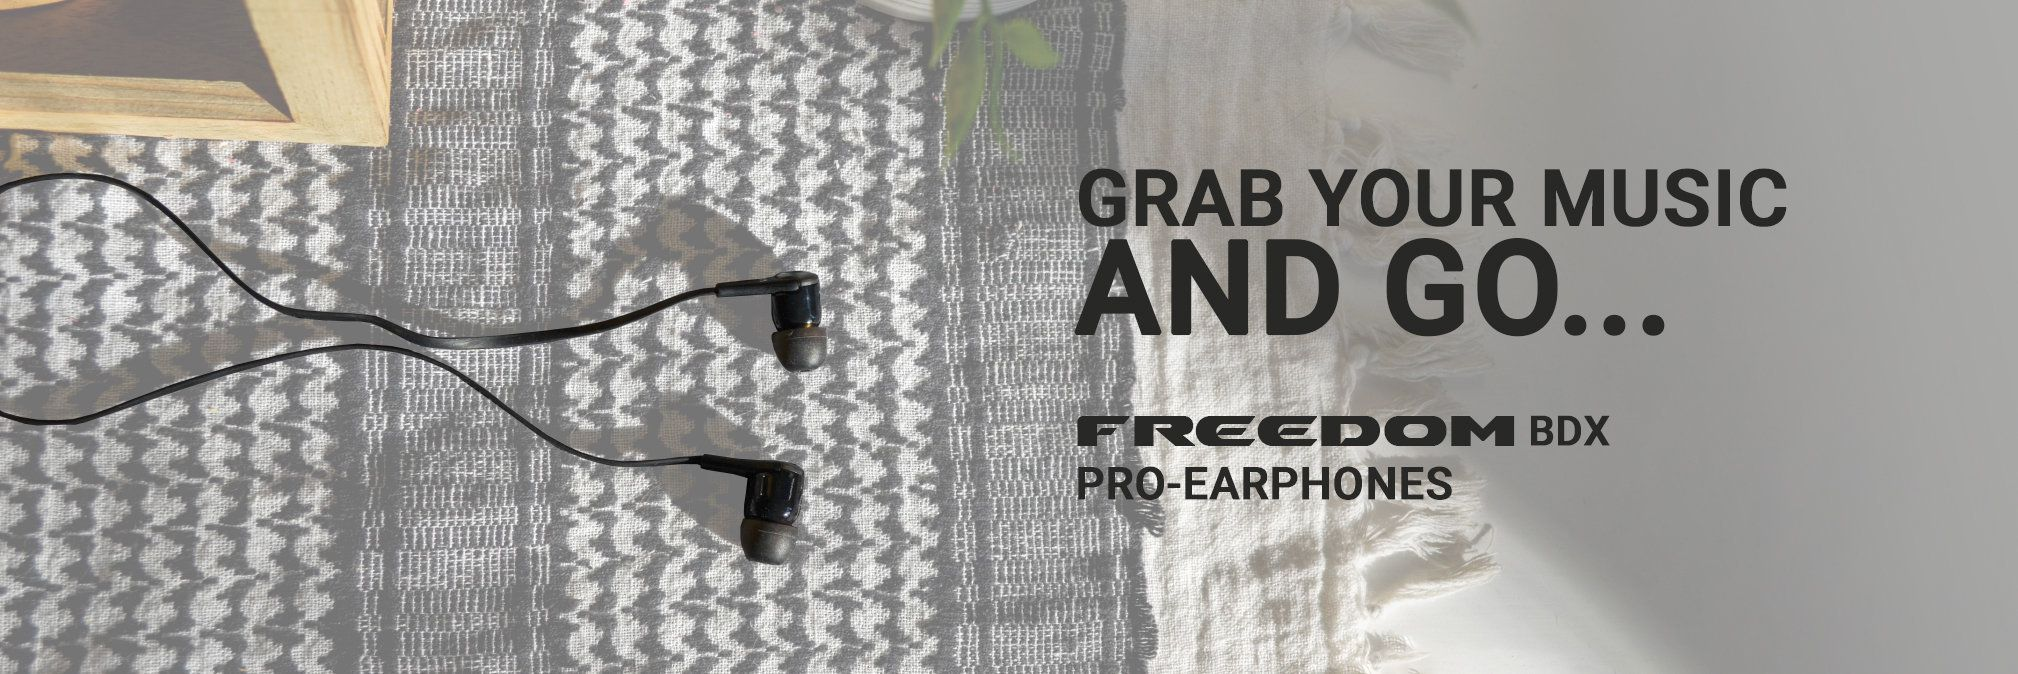 FREEDOM BDX EARPHONES